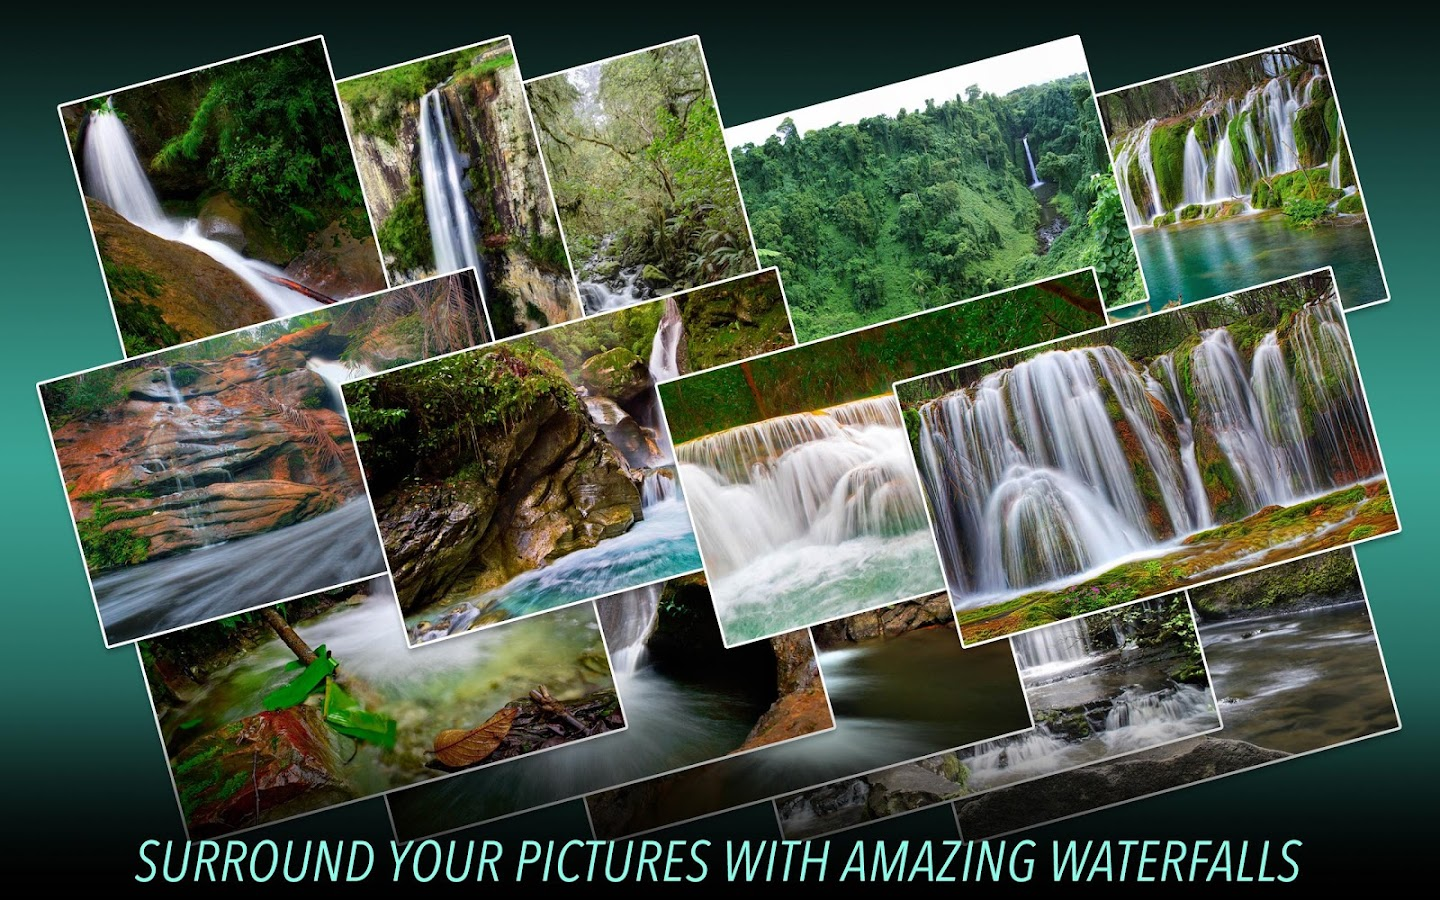 Wasserfall Fotorahmen android apps download